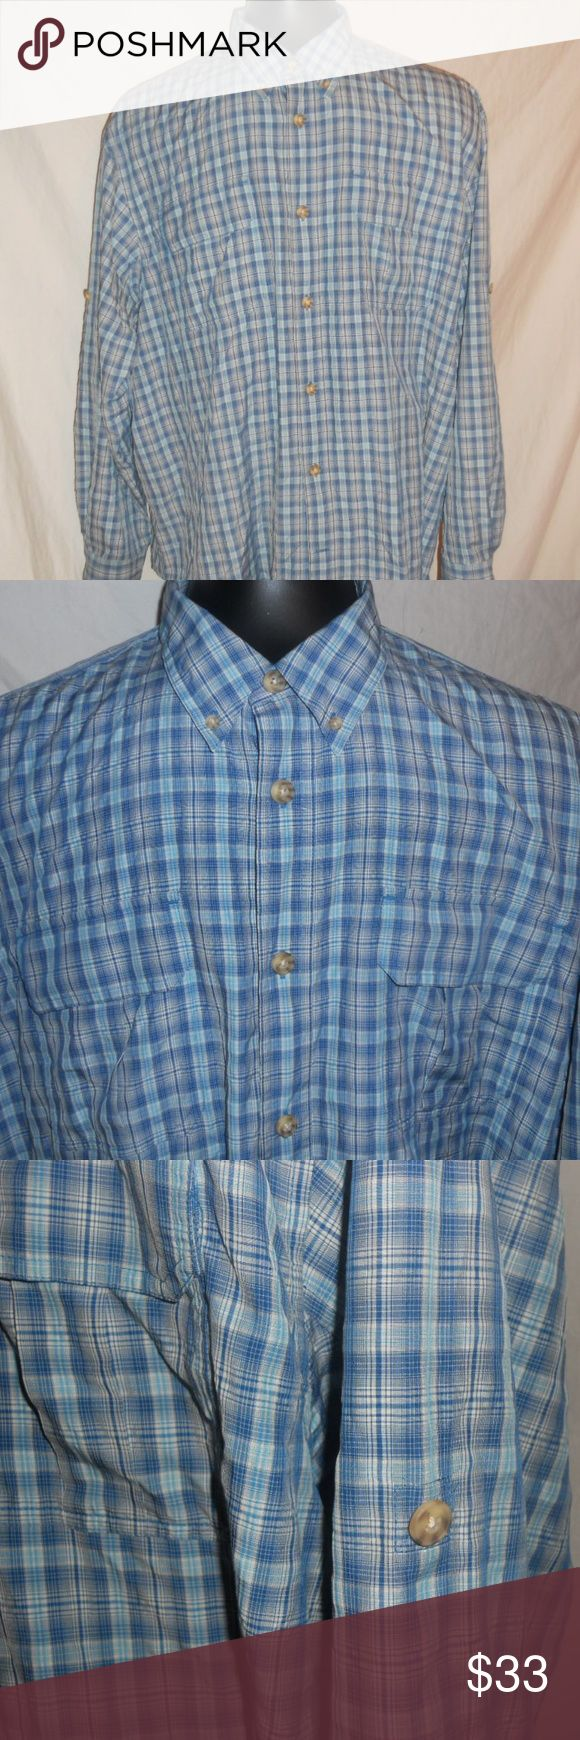 """Men's Duluth Trading Company Dress Shirt Size 3XL Men's Duluth Trading Company Dress Shirt Blue Plaid Size 3XL. Shirt has 2 breast pockets with Velcro closure and also has a button half way up the sleeve so when you roll your sleeves you can secure them to keep them from falling down. Shirt is in excellent condition with no damage and minimal wear.   Measurements  Chest - 29"""" flat  Length - 33"""" Arm Length - 26"""" Duluth Trading Co. Shirts Dress Shirts"""